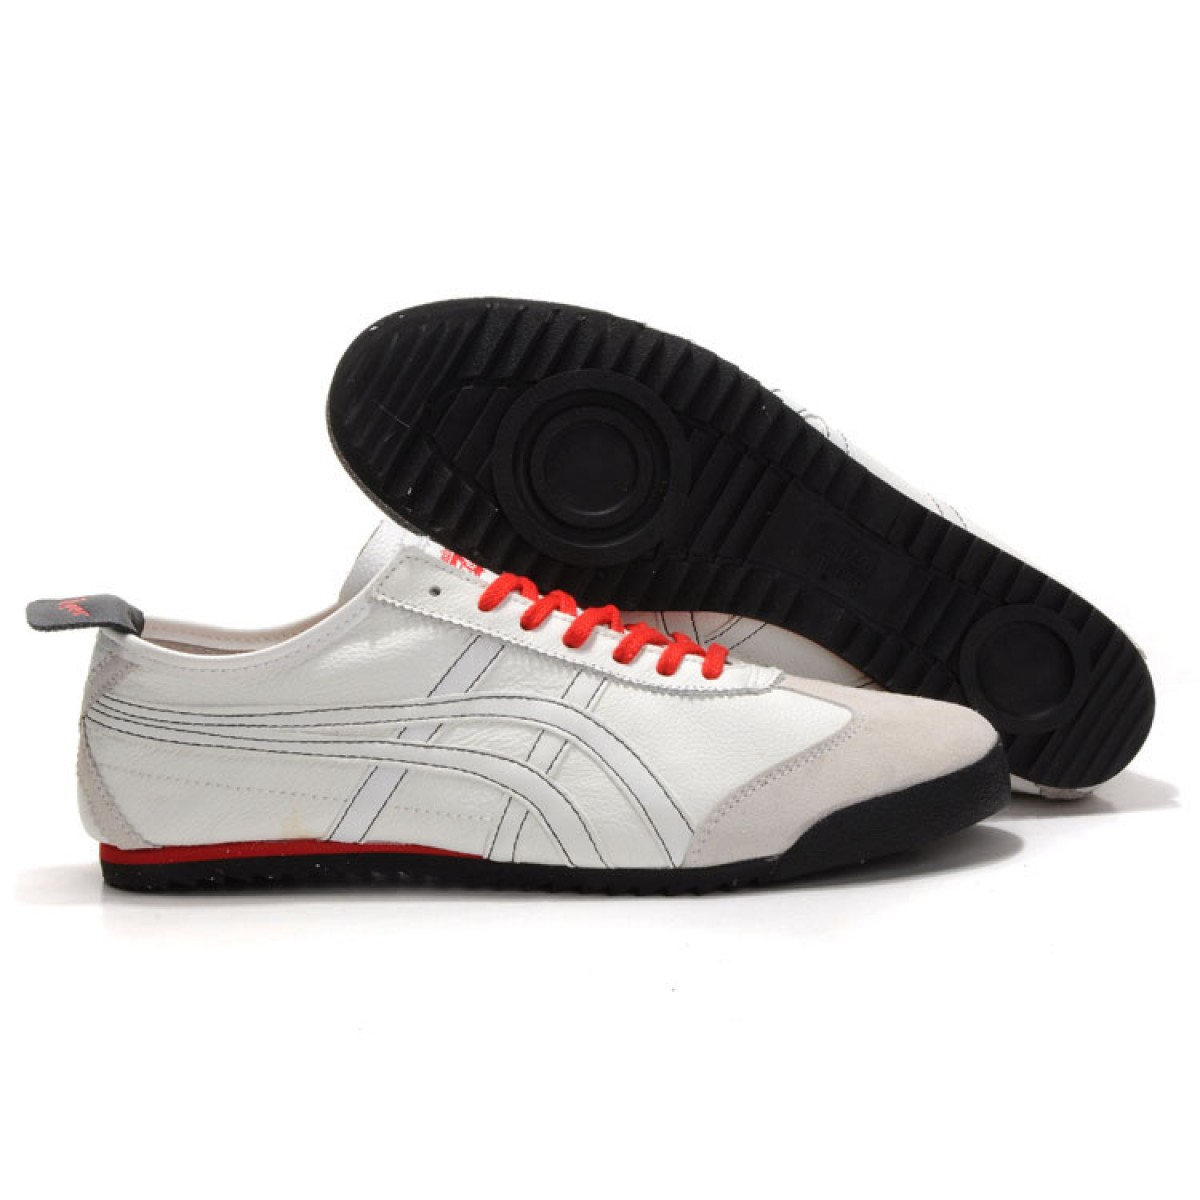 GL4626 Soldes Asics Mexico 66 Deluxe Homme blanc rouge 80102150 Pas Cher